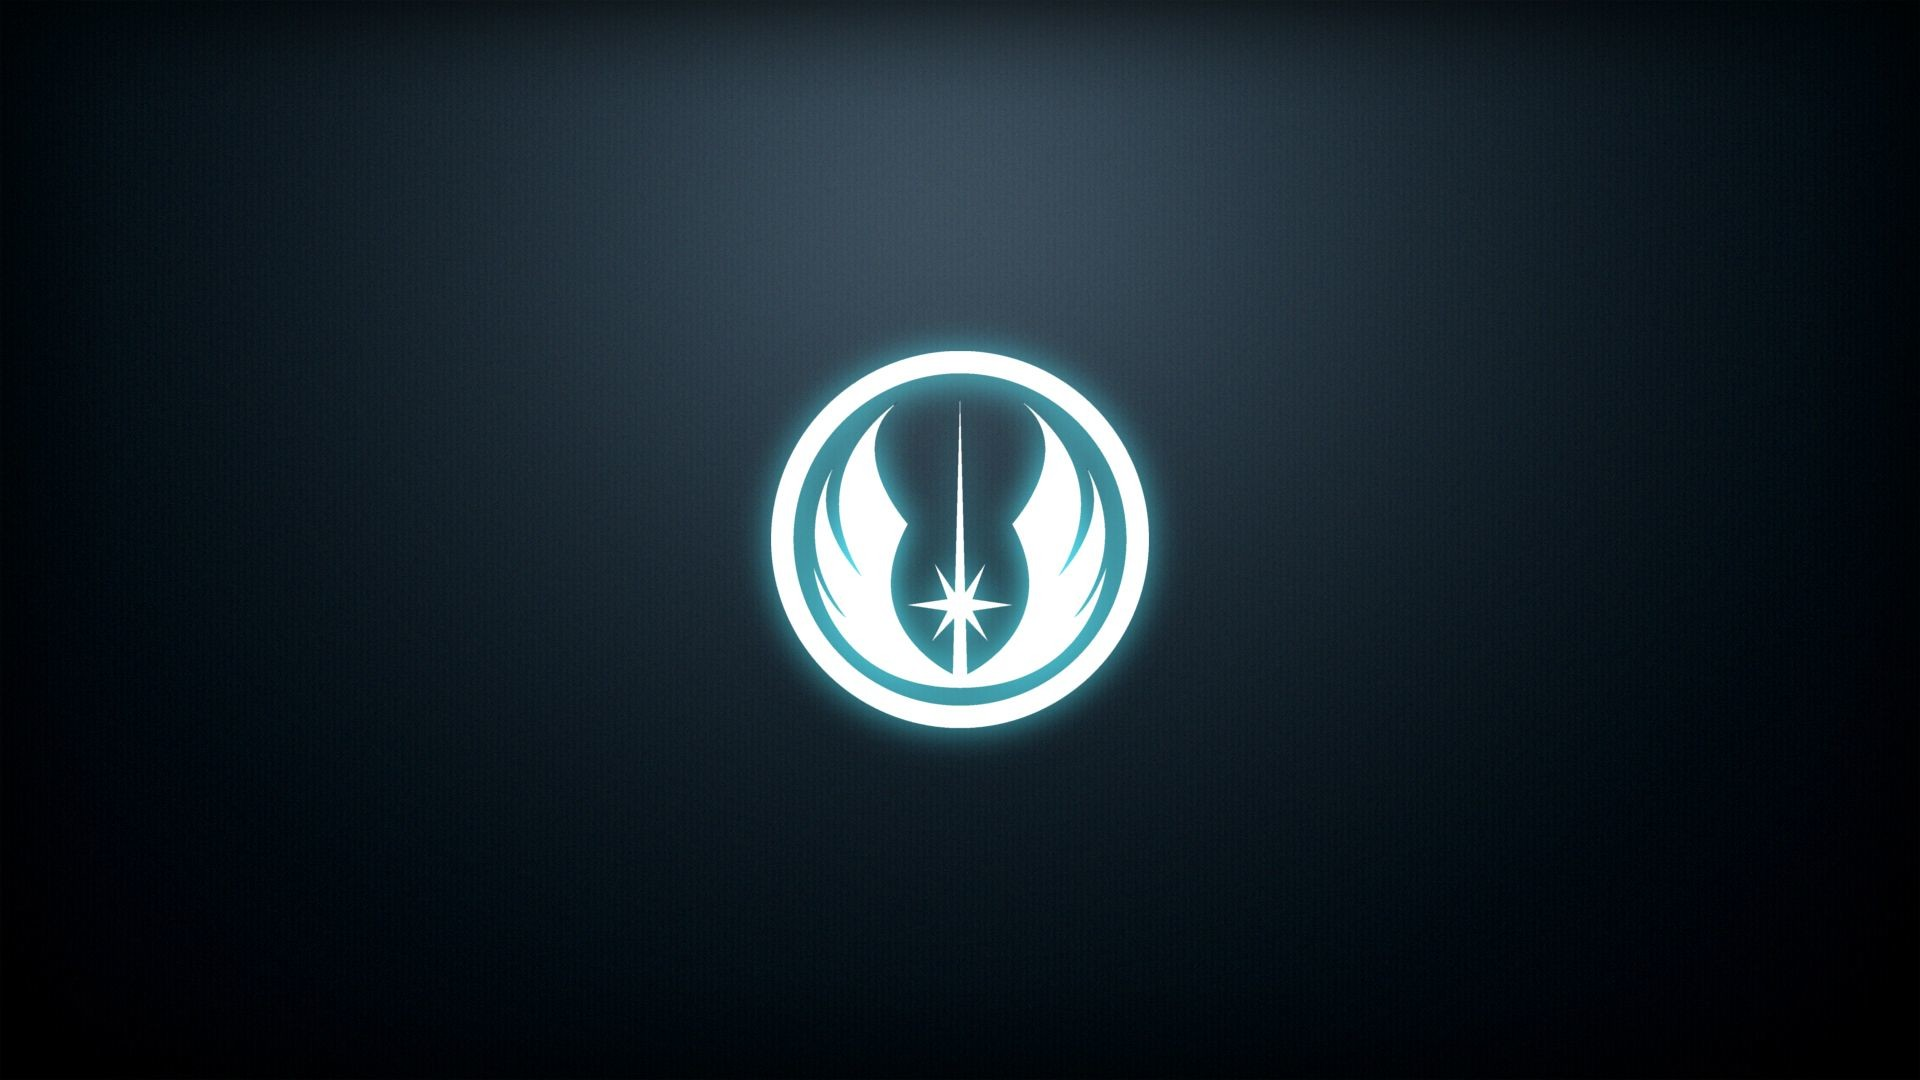 Star Wars Wallpapers with Jedi Symbol   The Art Mad Wallpapers